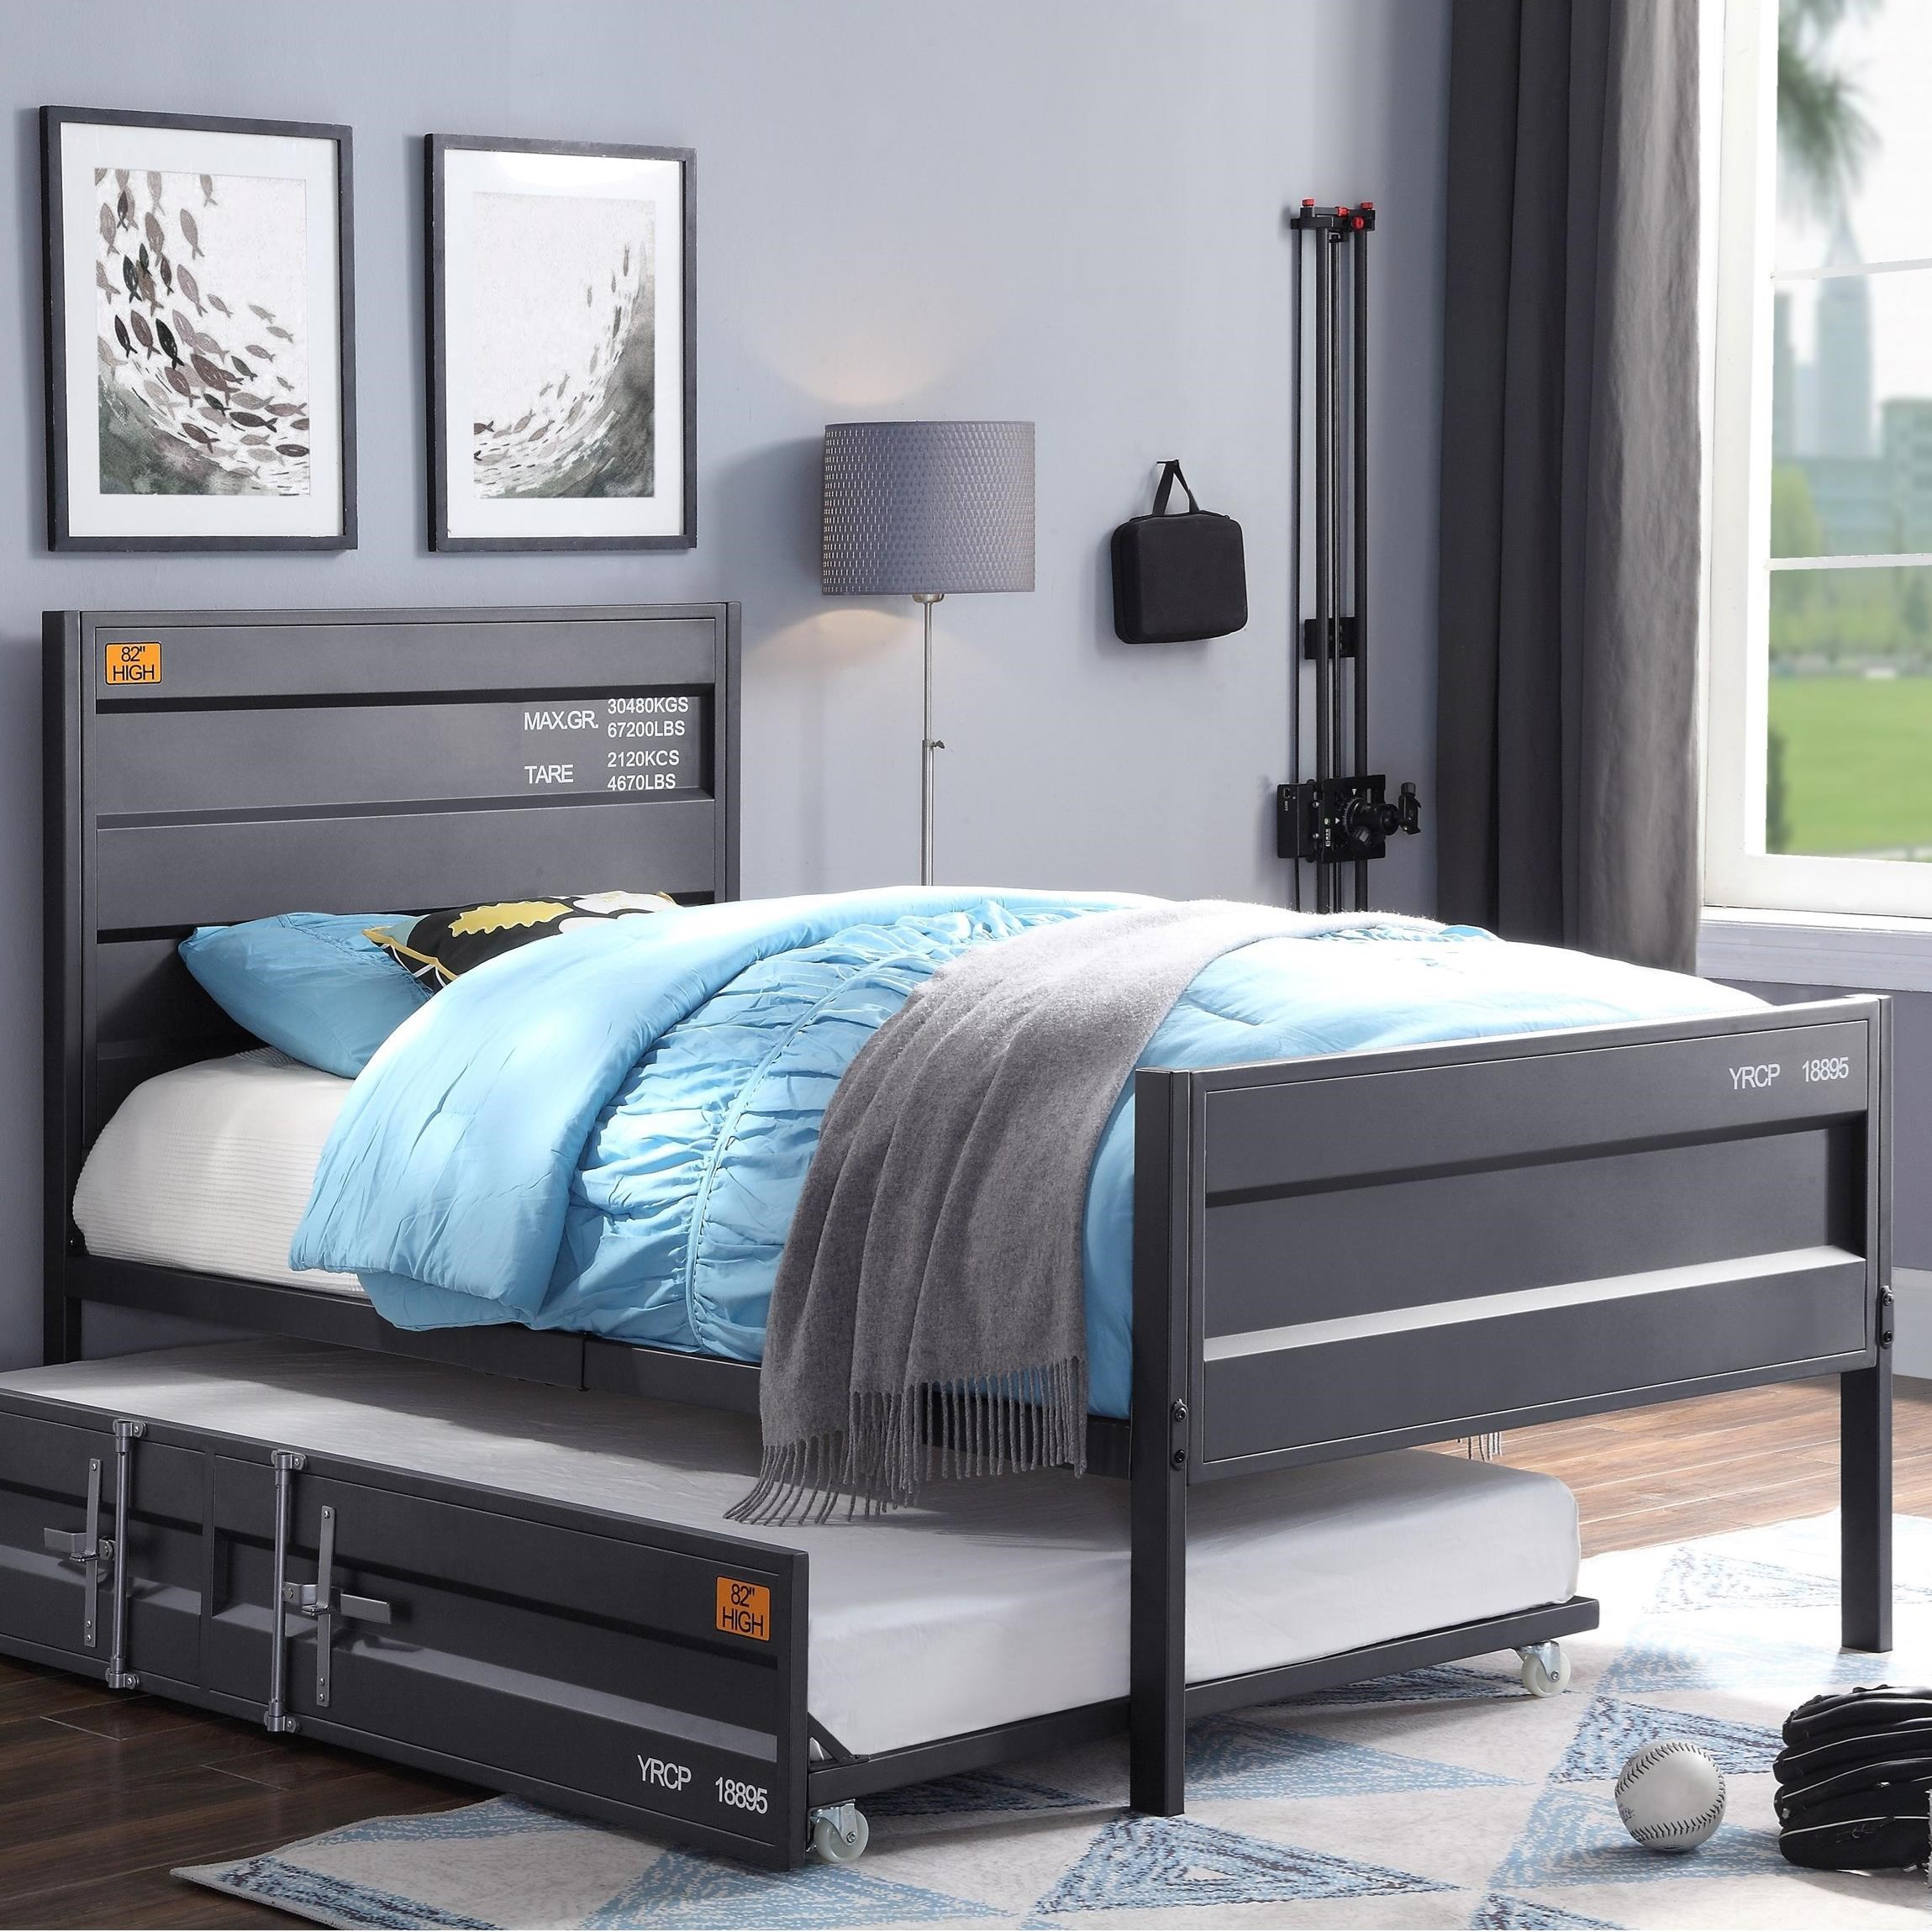 Acme Furniture Cargo 35920t Twin Bed